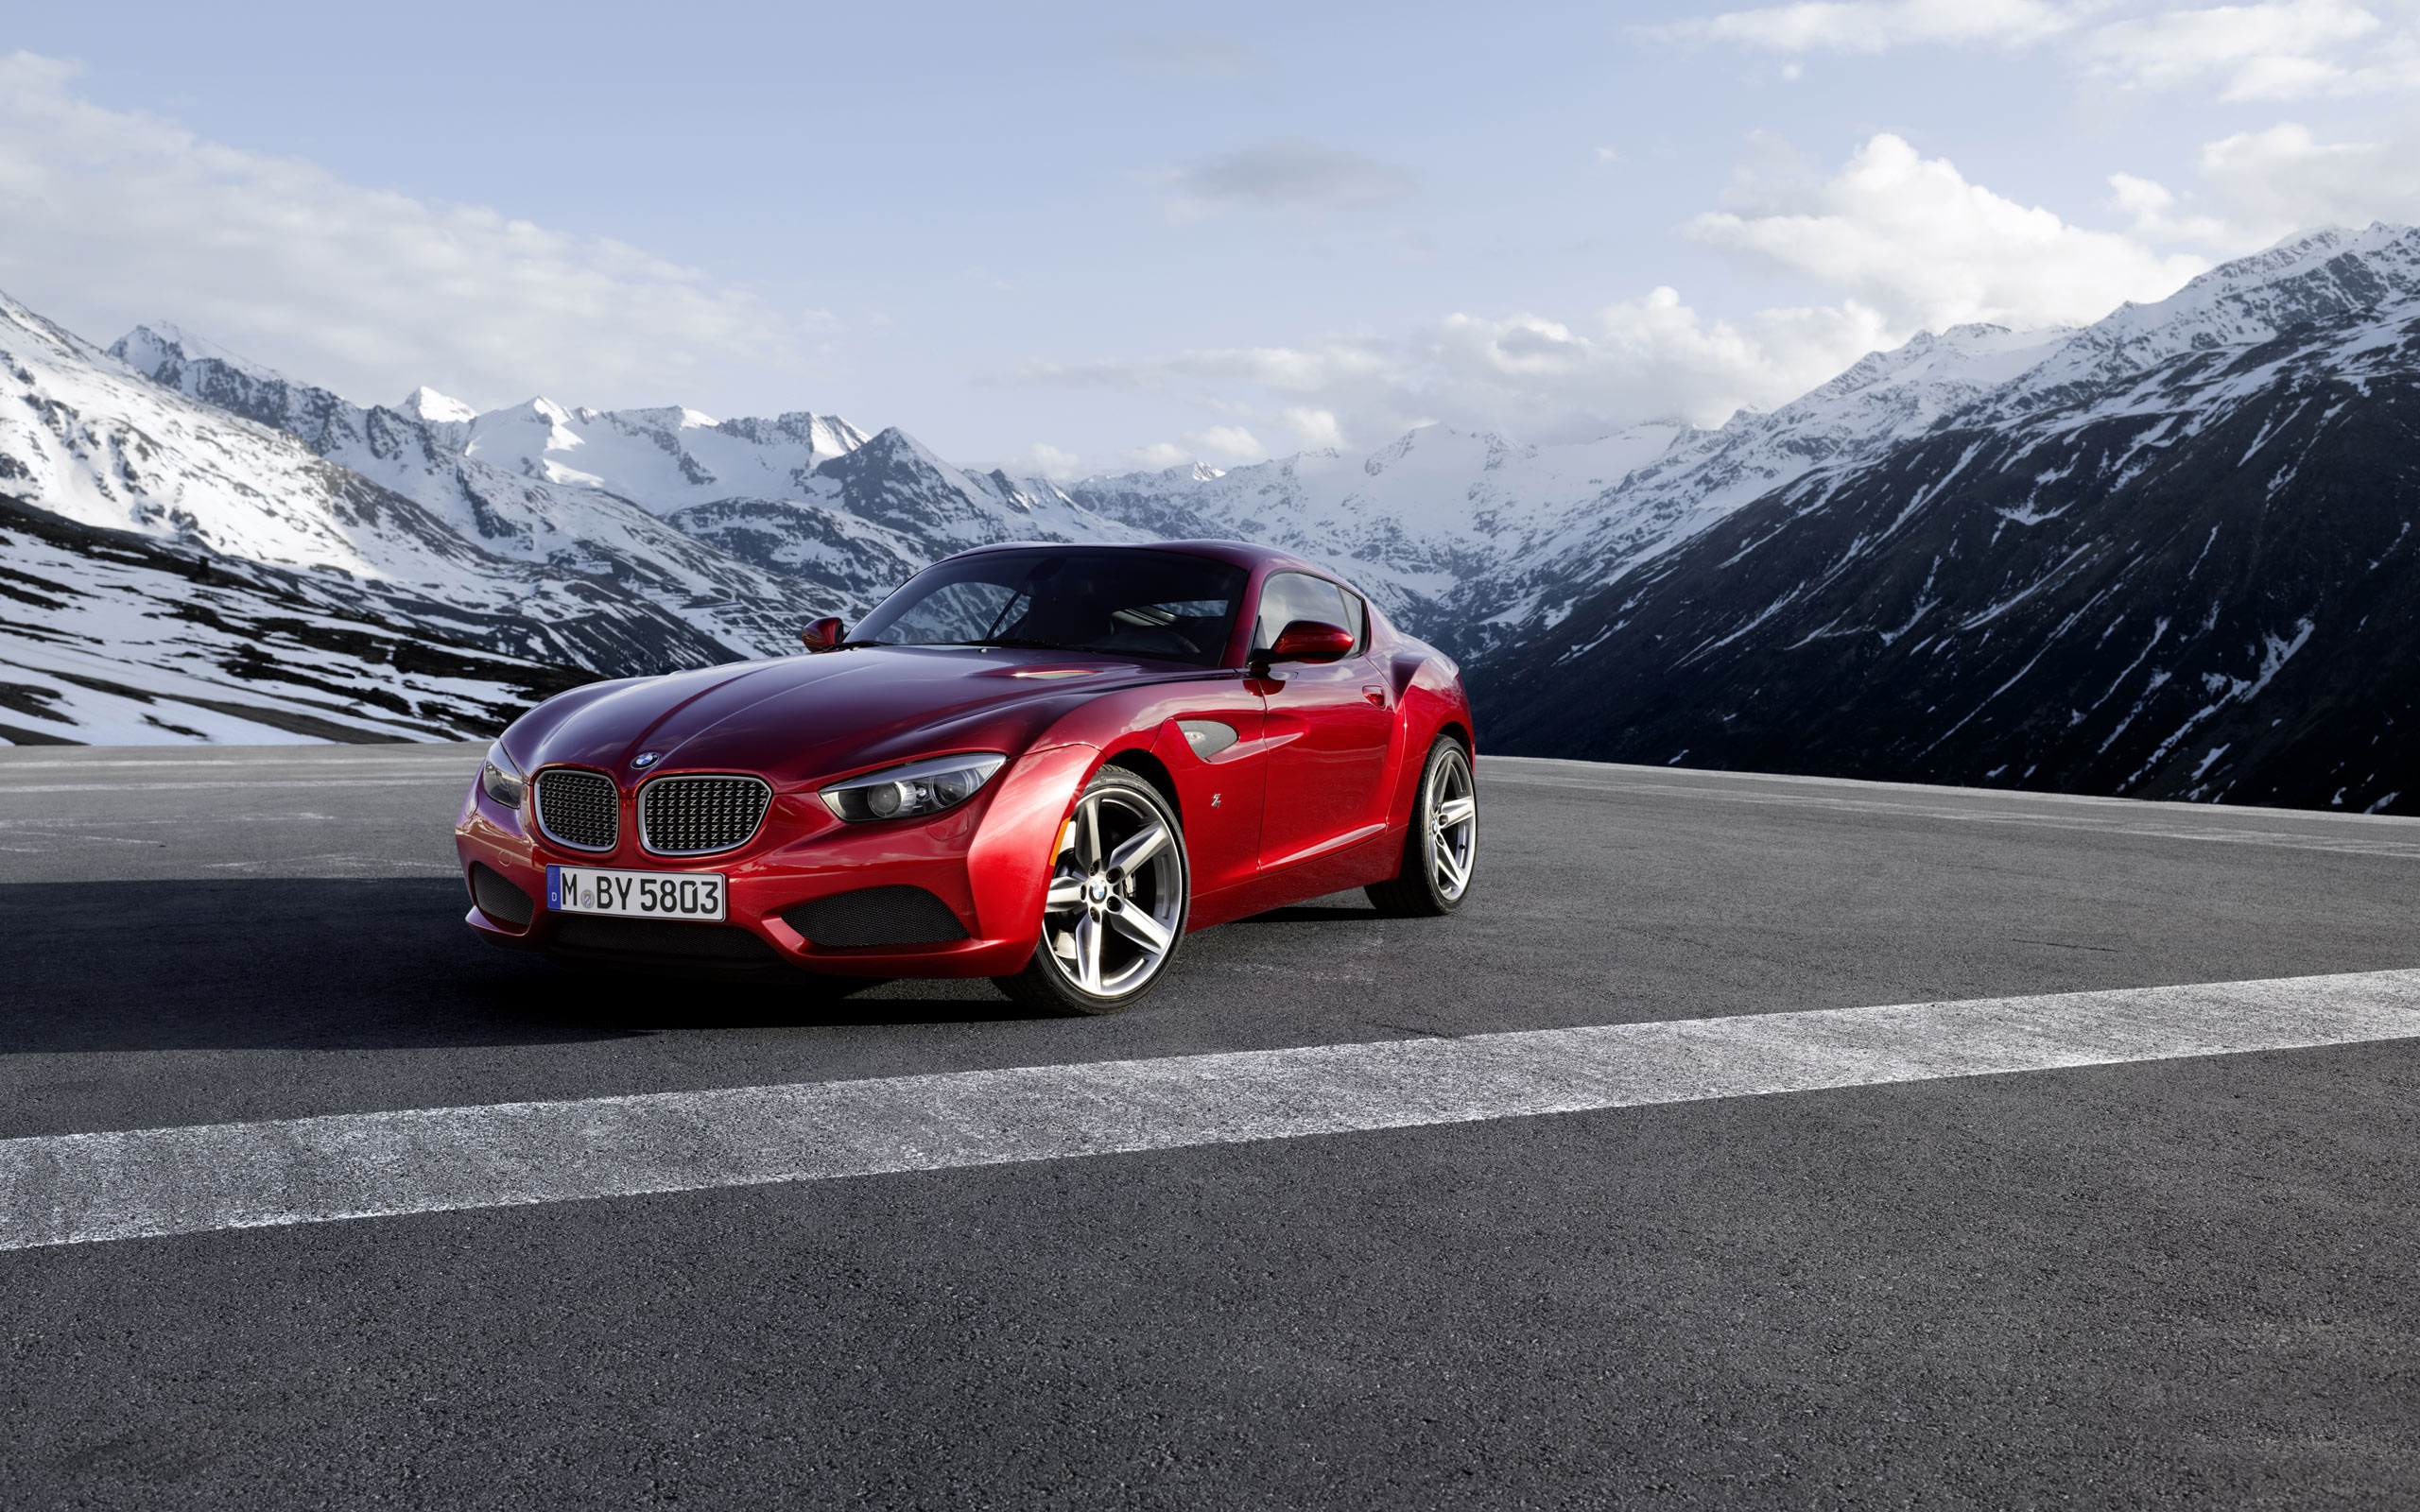 2560x1600 - BMW Zagato Coupe Wallpapers 14